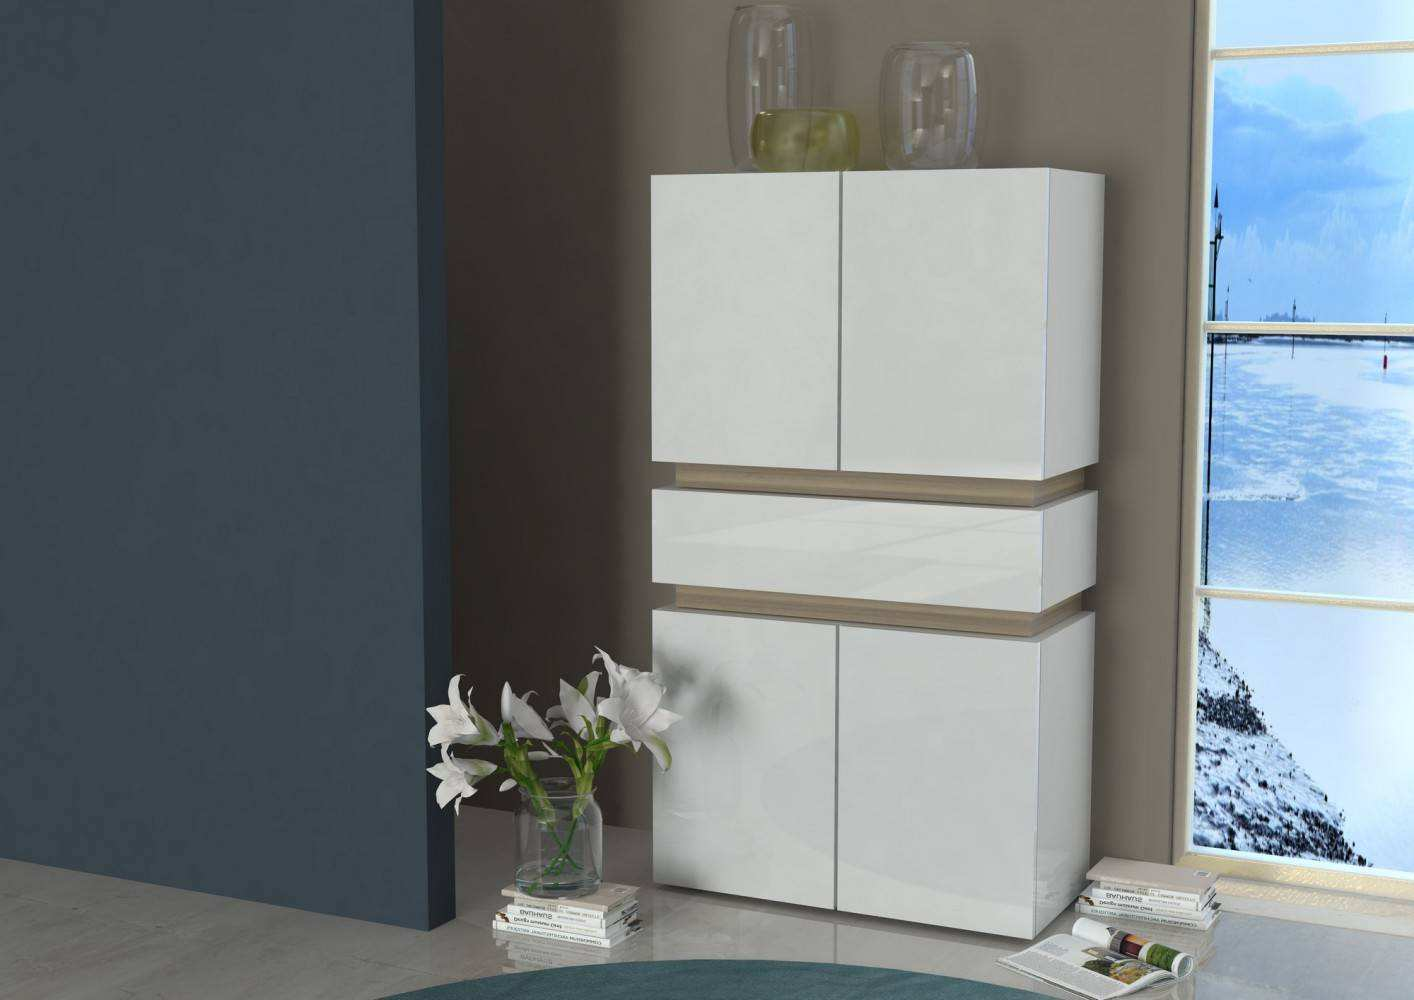 Highboard Modern Tecnos athena Highboard Sideboard Schrank Vitrine